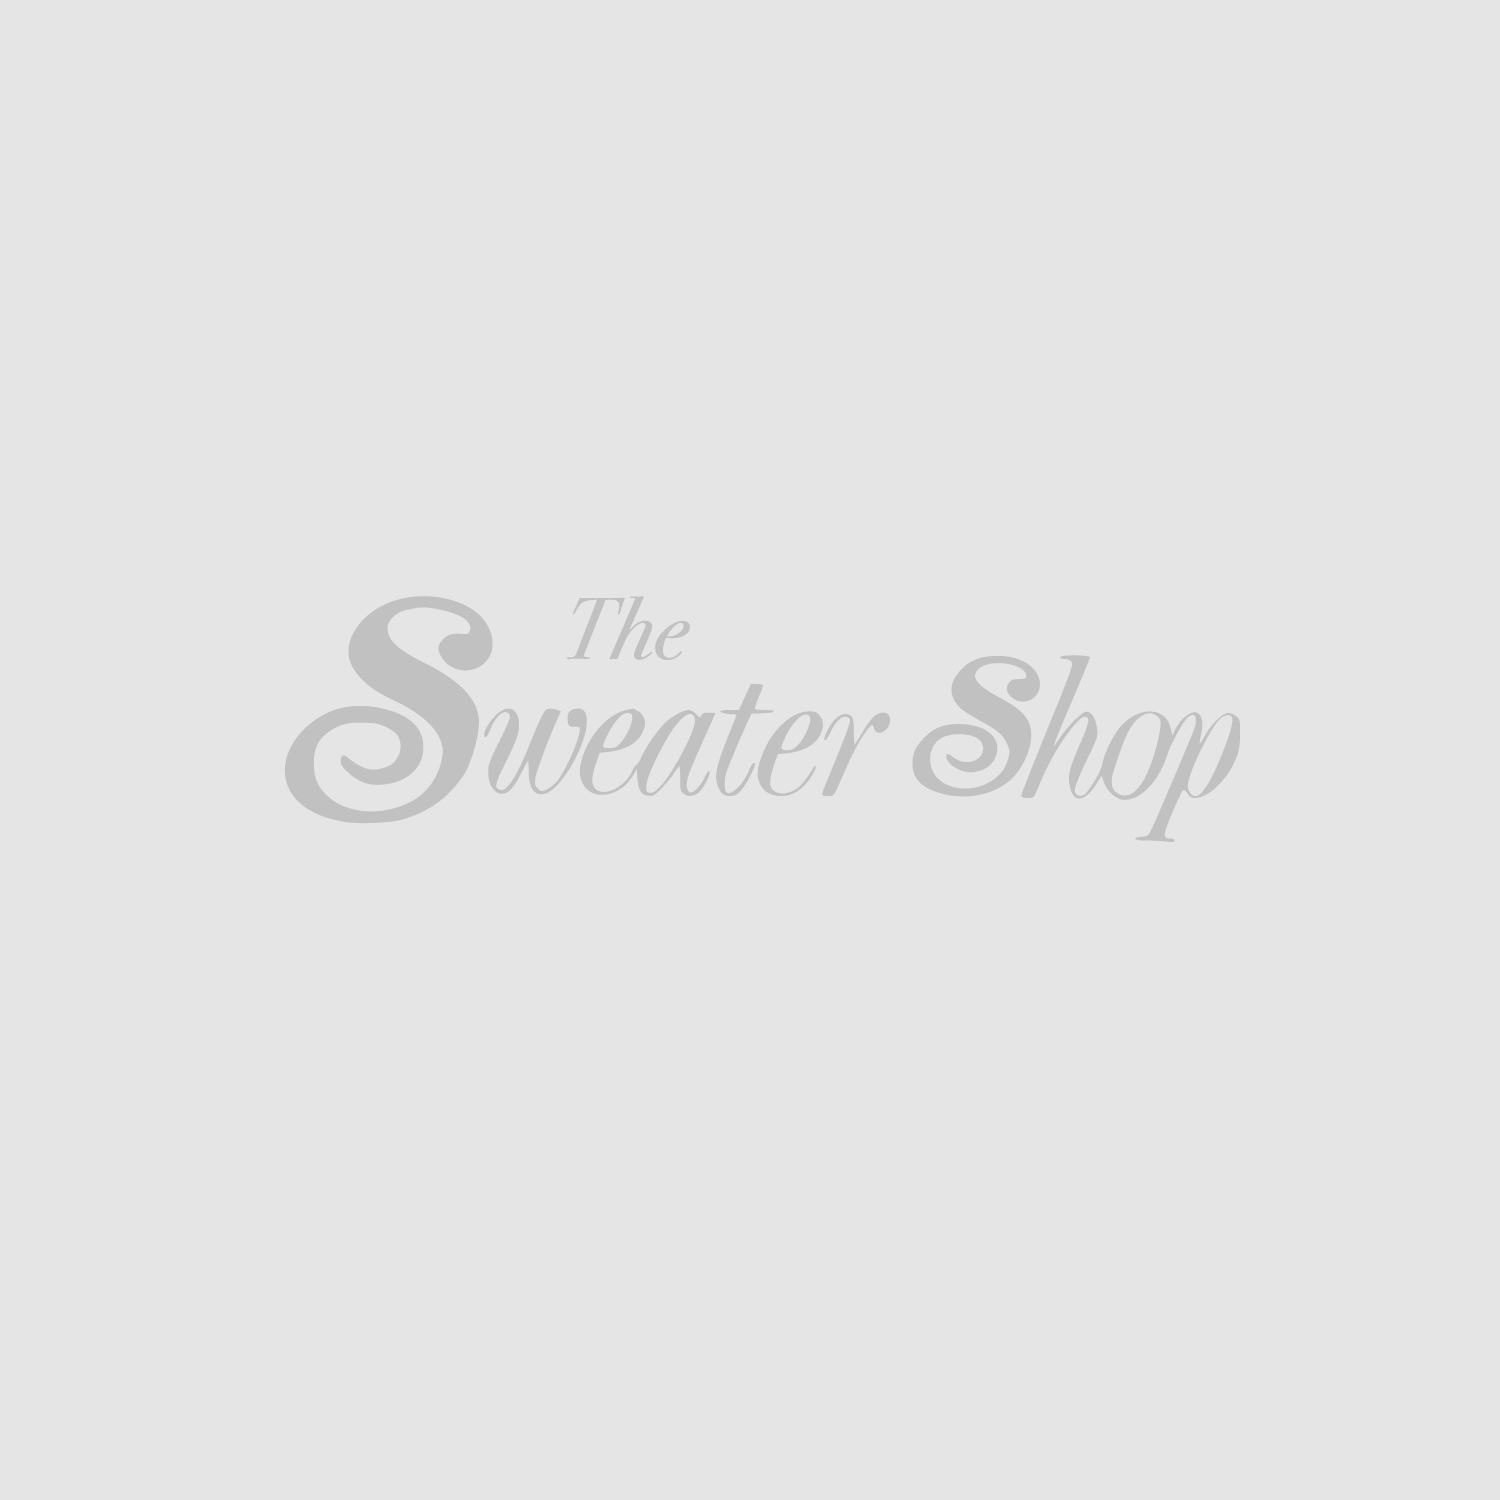 Fairisle Socks | Sweater Shop Dublin, Ireland | The Sweater Shop ...